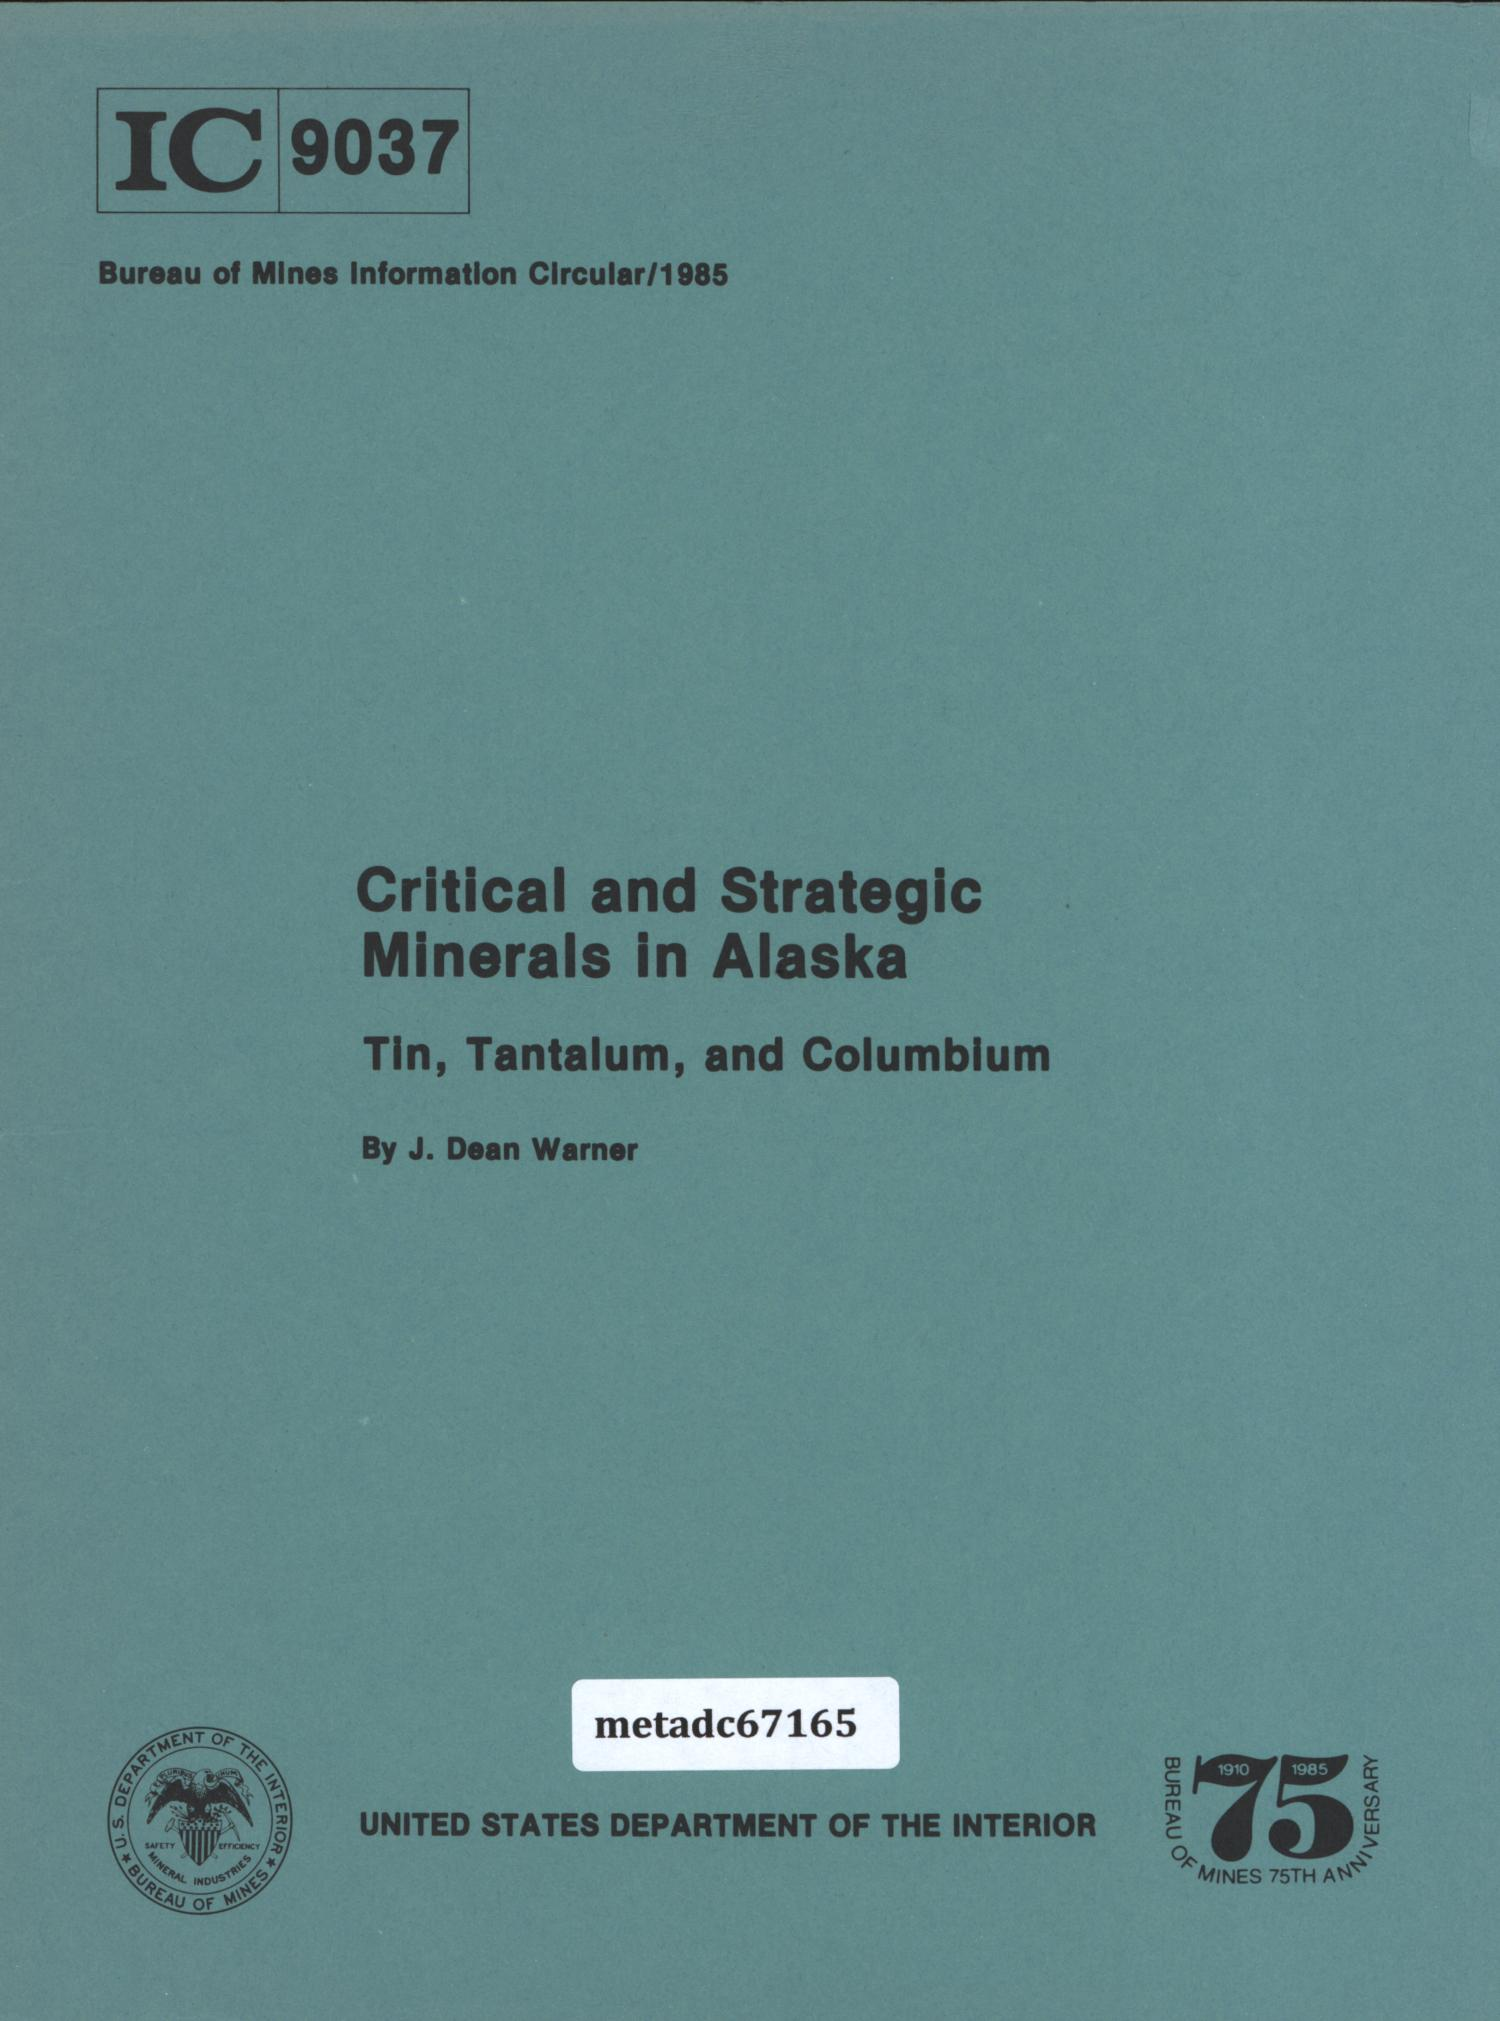 Critical and Strategic Minerals in Alaska: Tin, Tantalum, and Columbium                                                                                                      Front Cover